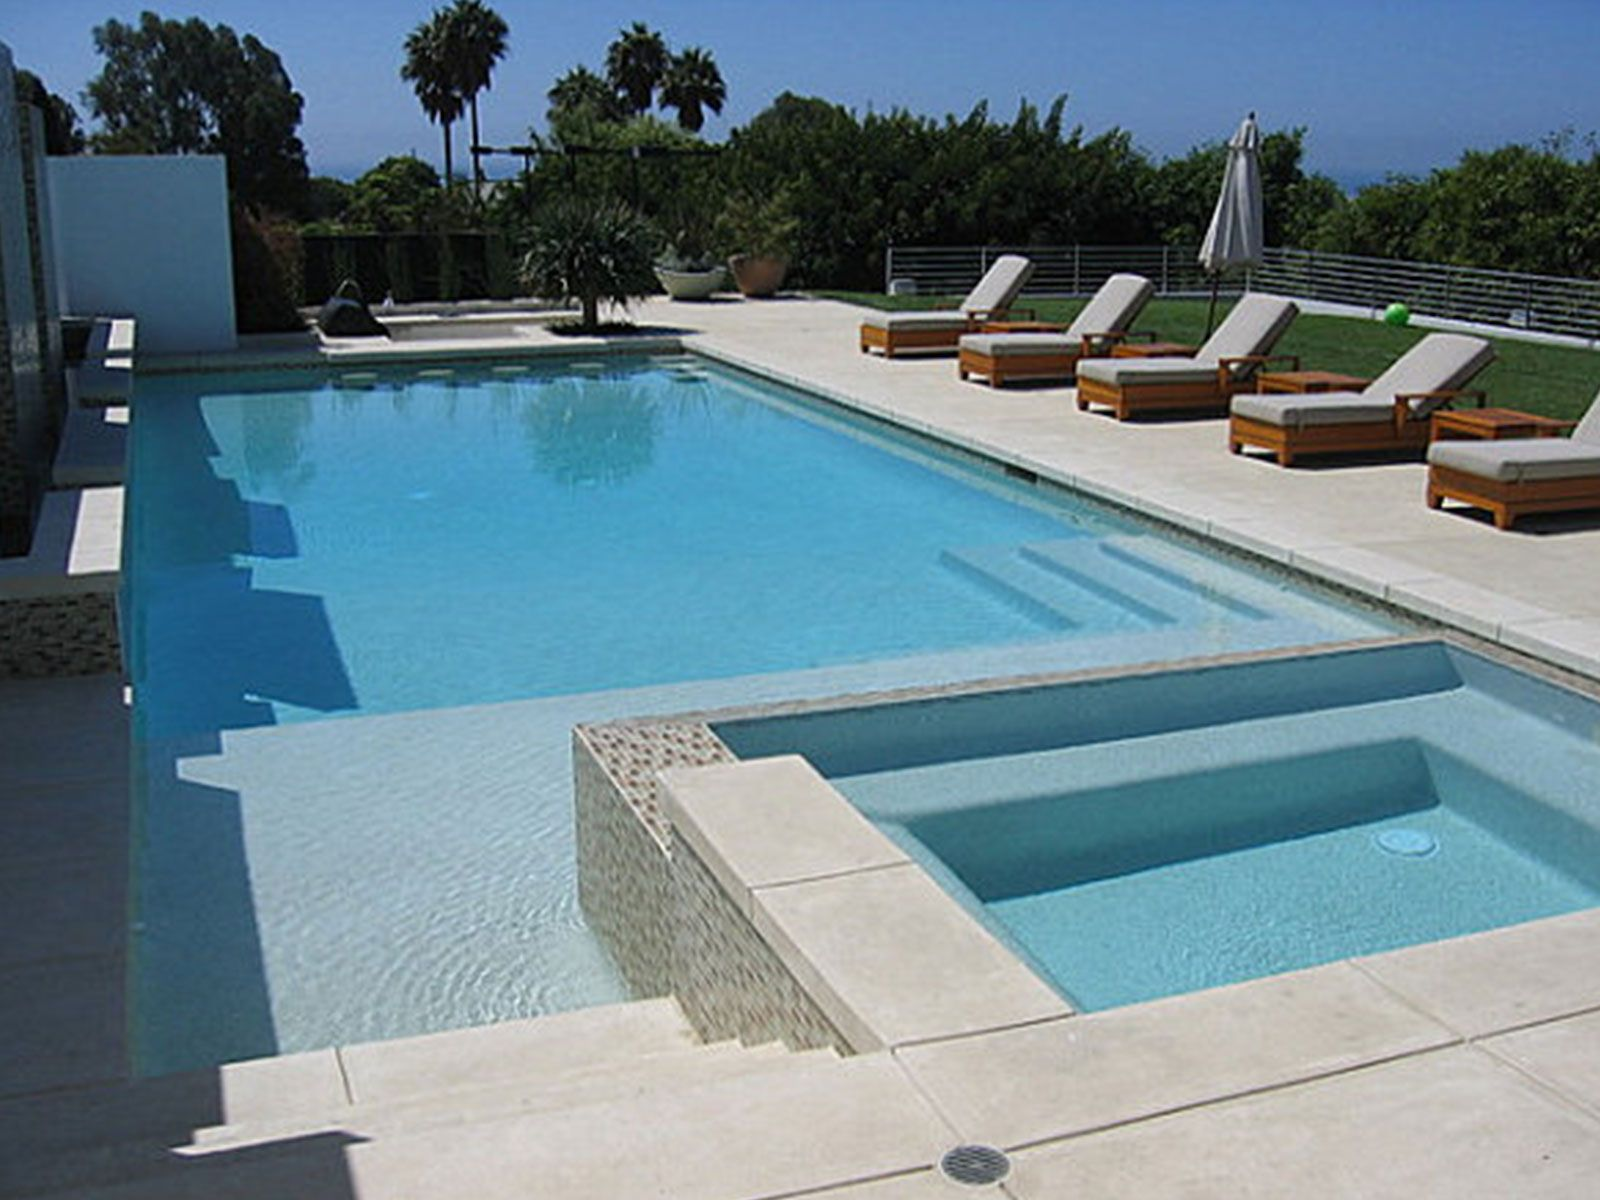 Simple swimming pool design image modern creative swimming for Simple backyard pools